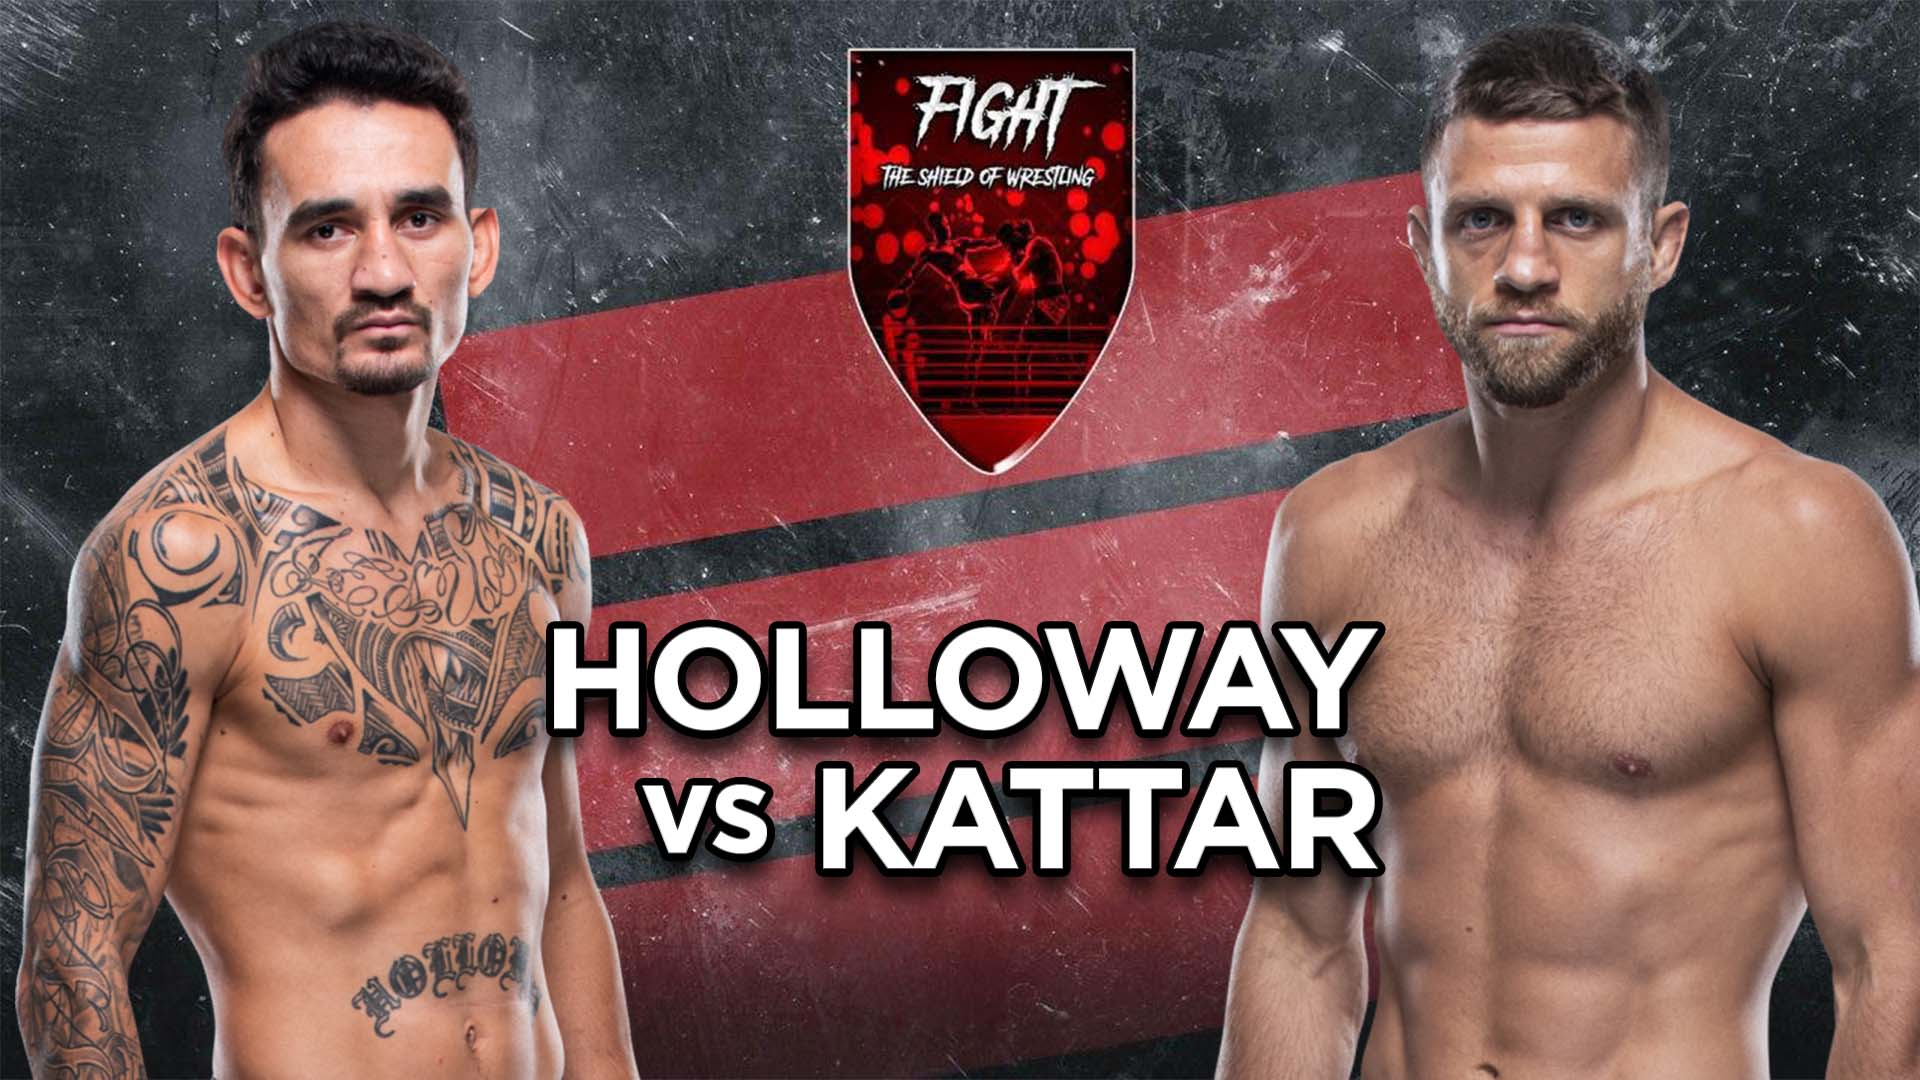 UFC Fight Night: Holloway vs Kattar card, orario, streaming e come vederlo